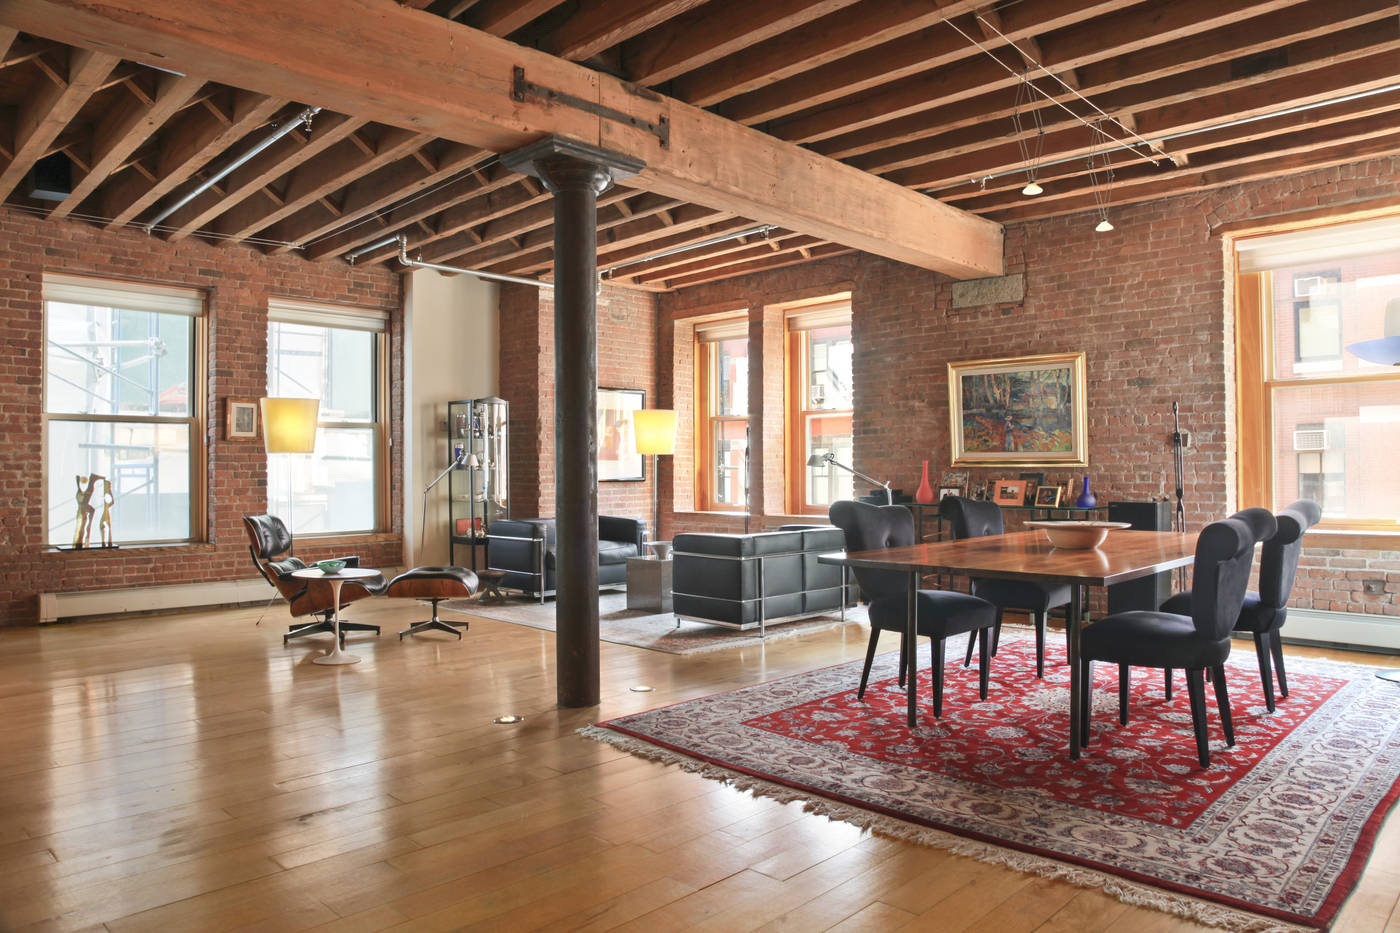 Orlando bloom tribeca loft celebrity homes for sale for Tribeca homes for sale